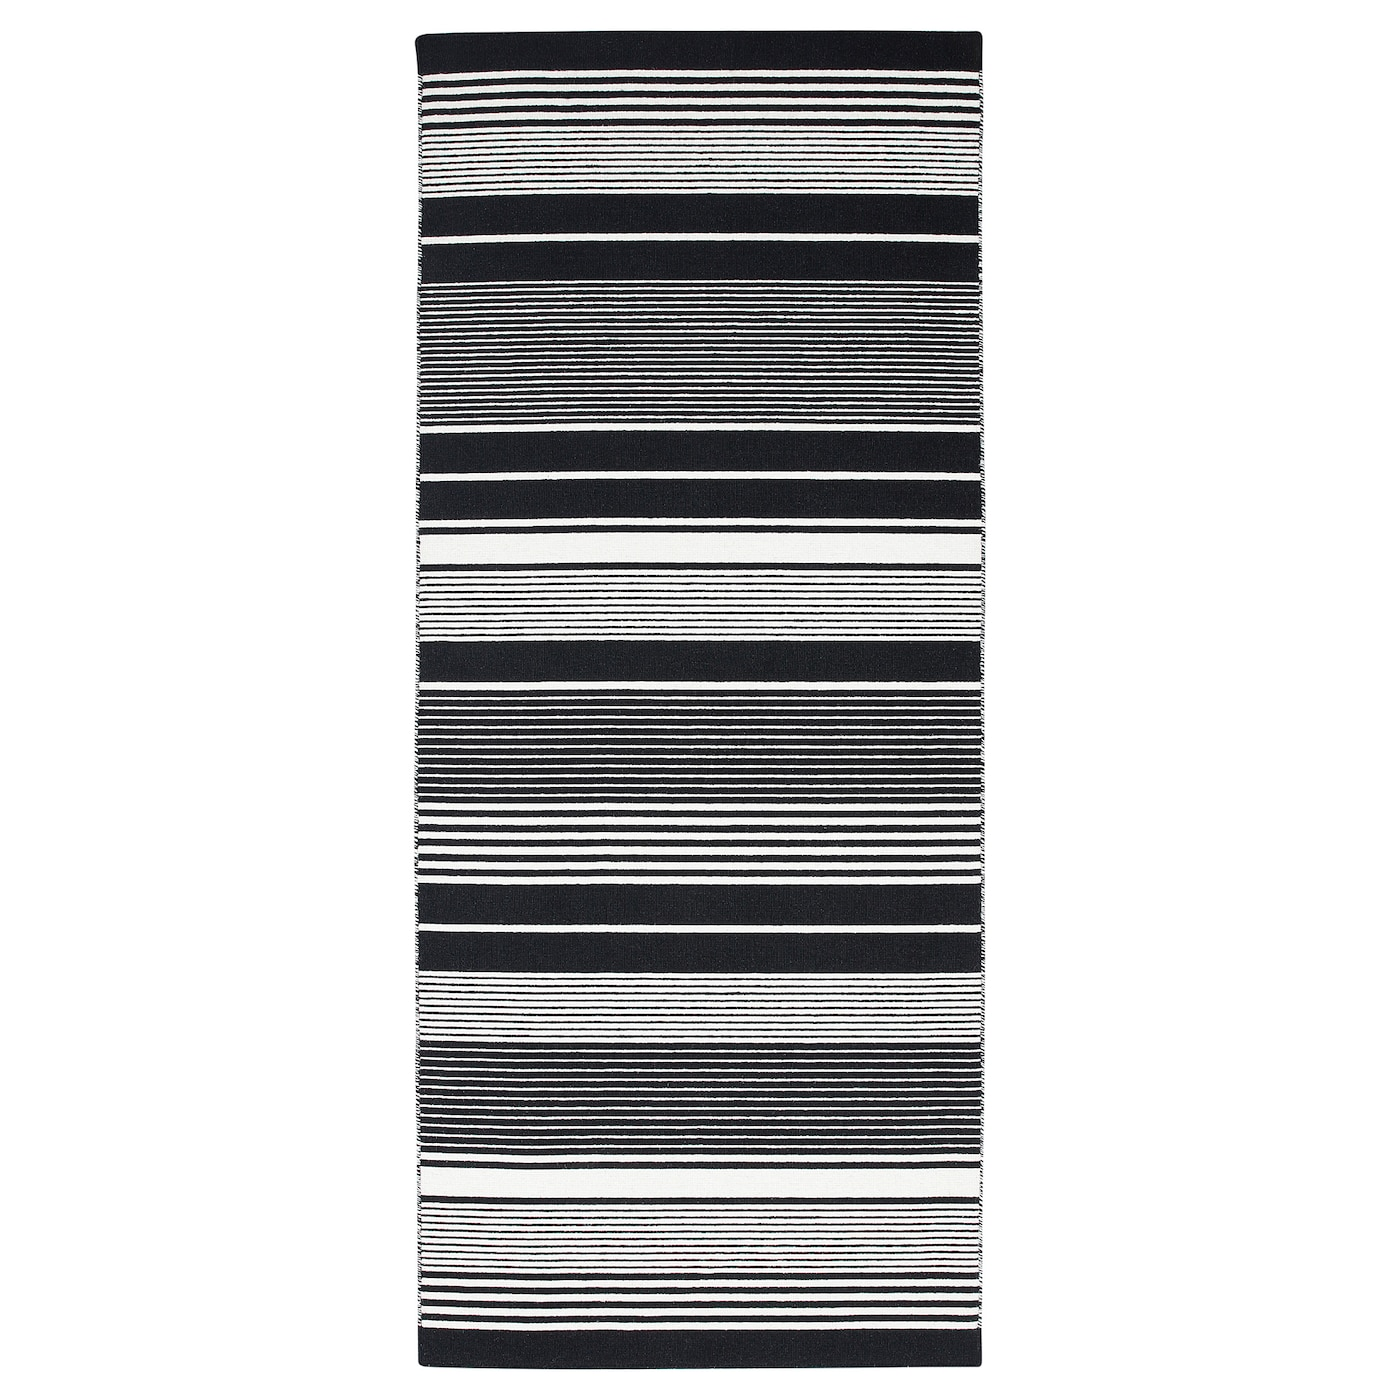 IKEA VESLÖS rug, flatwoven Easy to vacuum thanks to its flat surface.